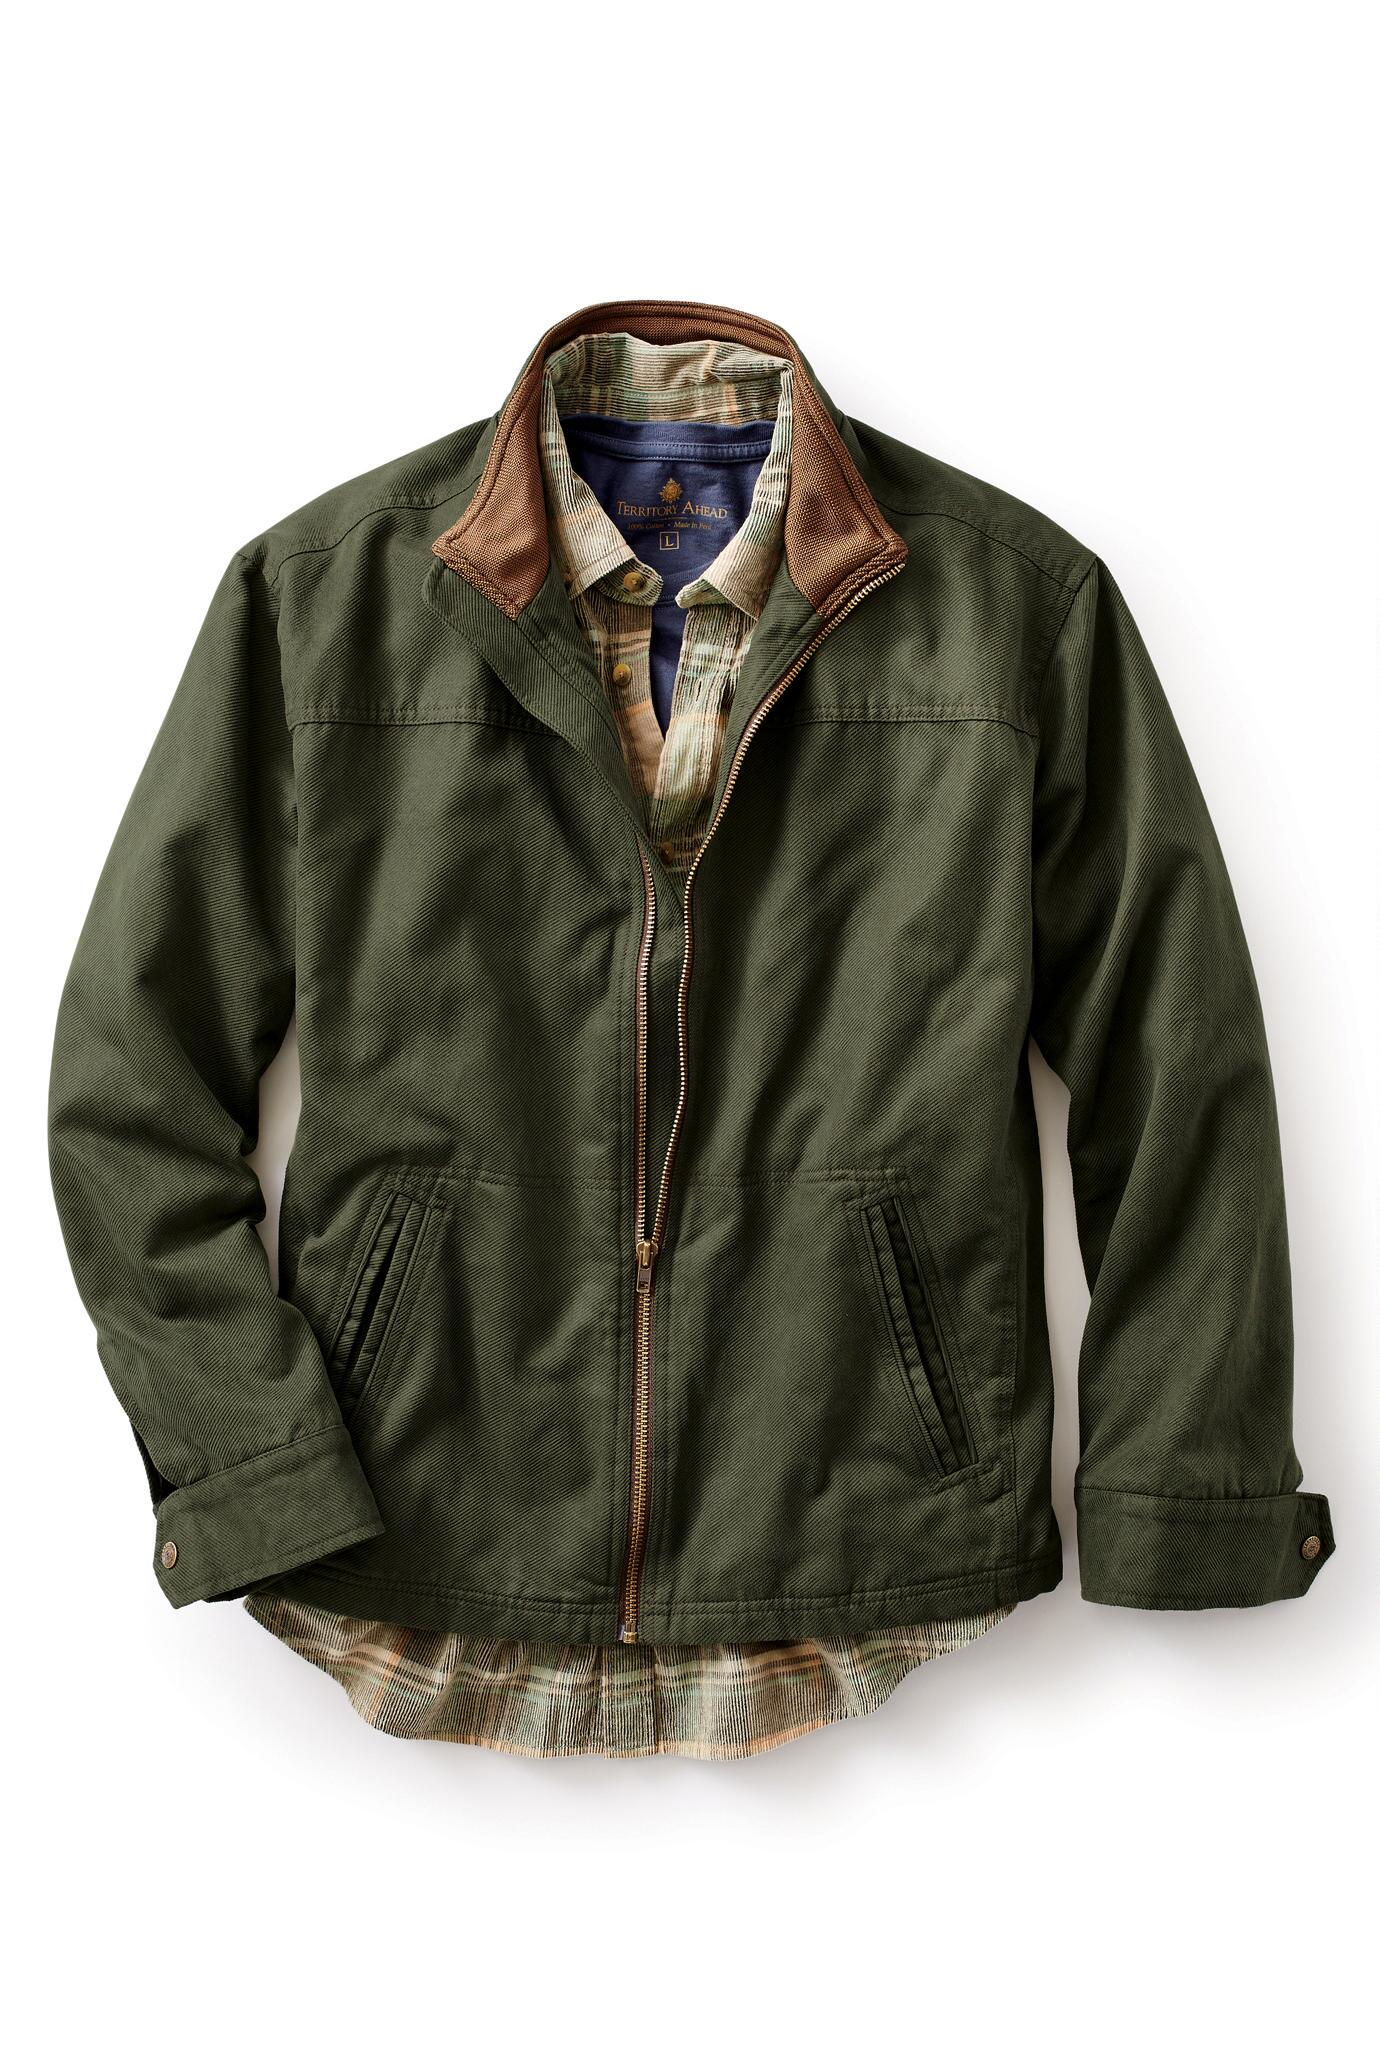 Wax Canvas Jacket | Orvis Heritage Field Coat | Orvis Field Coat